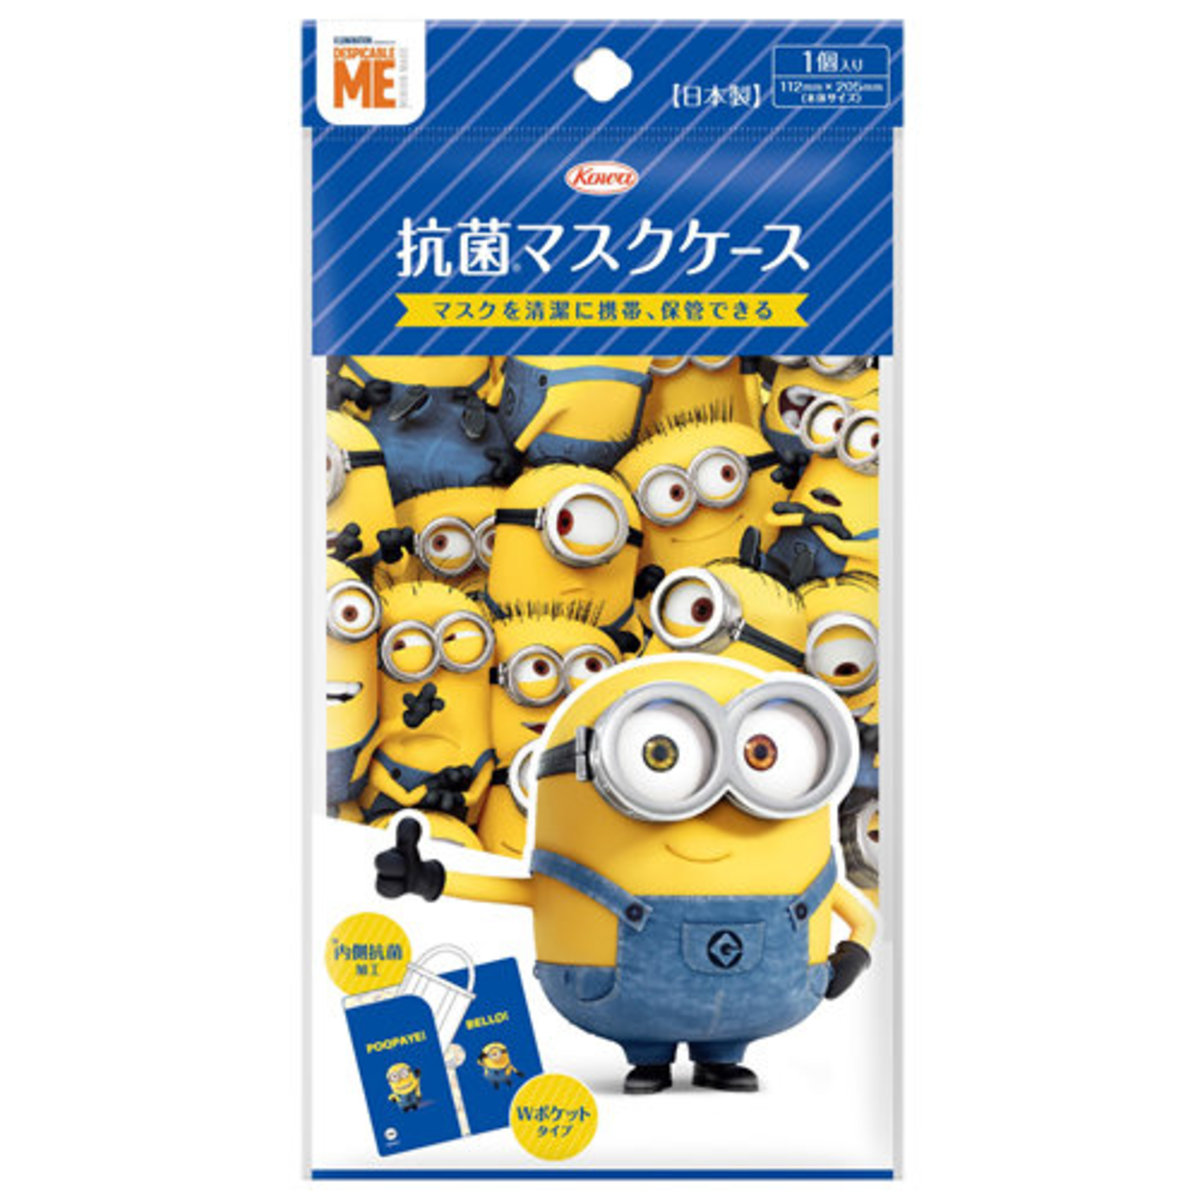 (Blue/Minions) Made in Japan Kowa Portable Anti-bacterial Surgical Mask Case (2 Compartments)